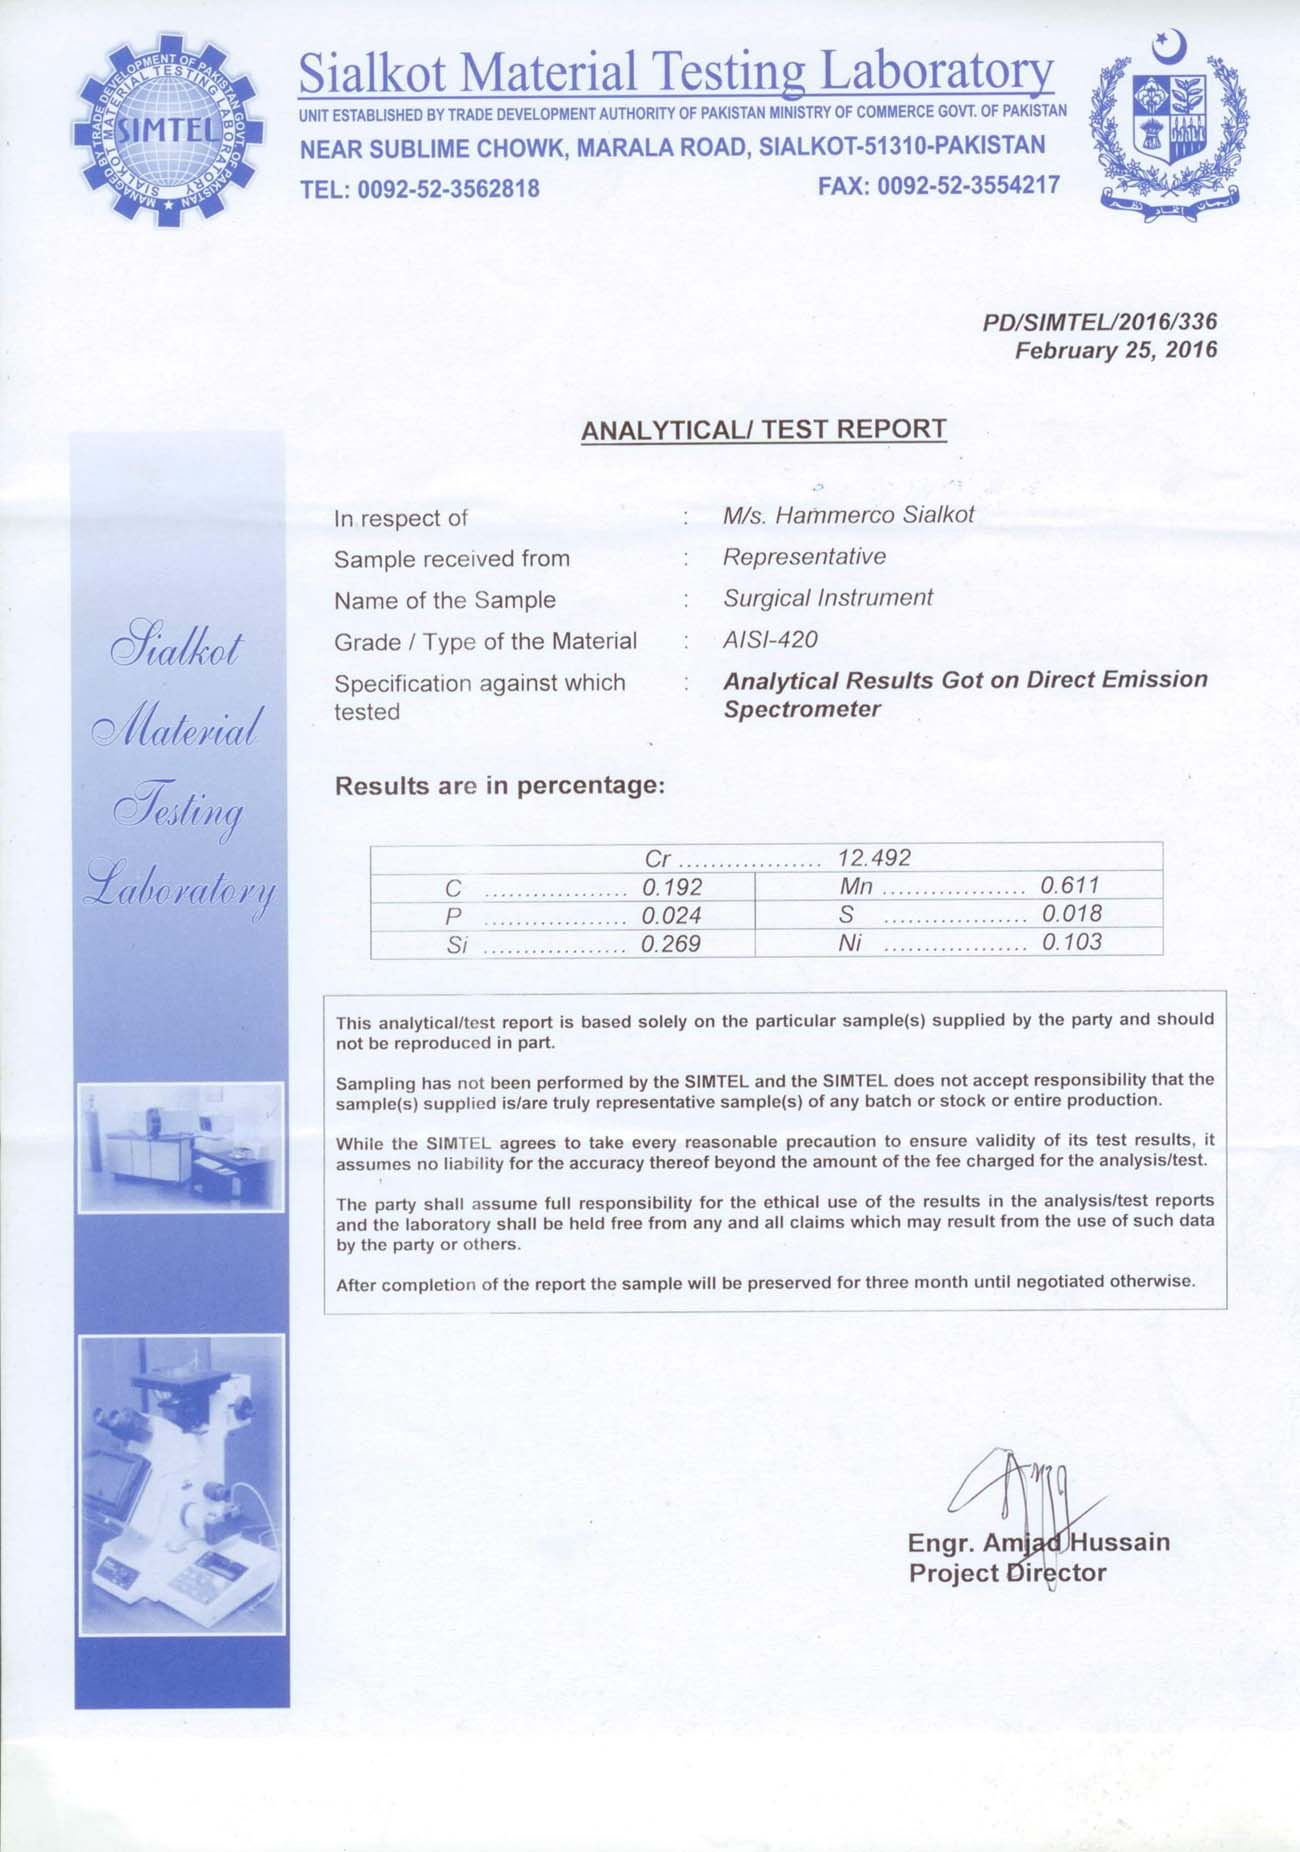 Analytical/Test Report